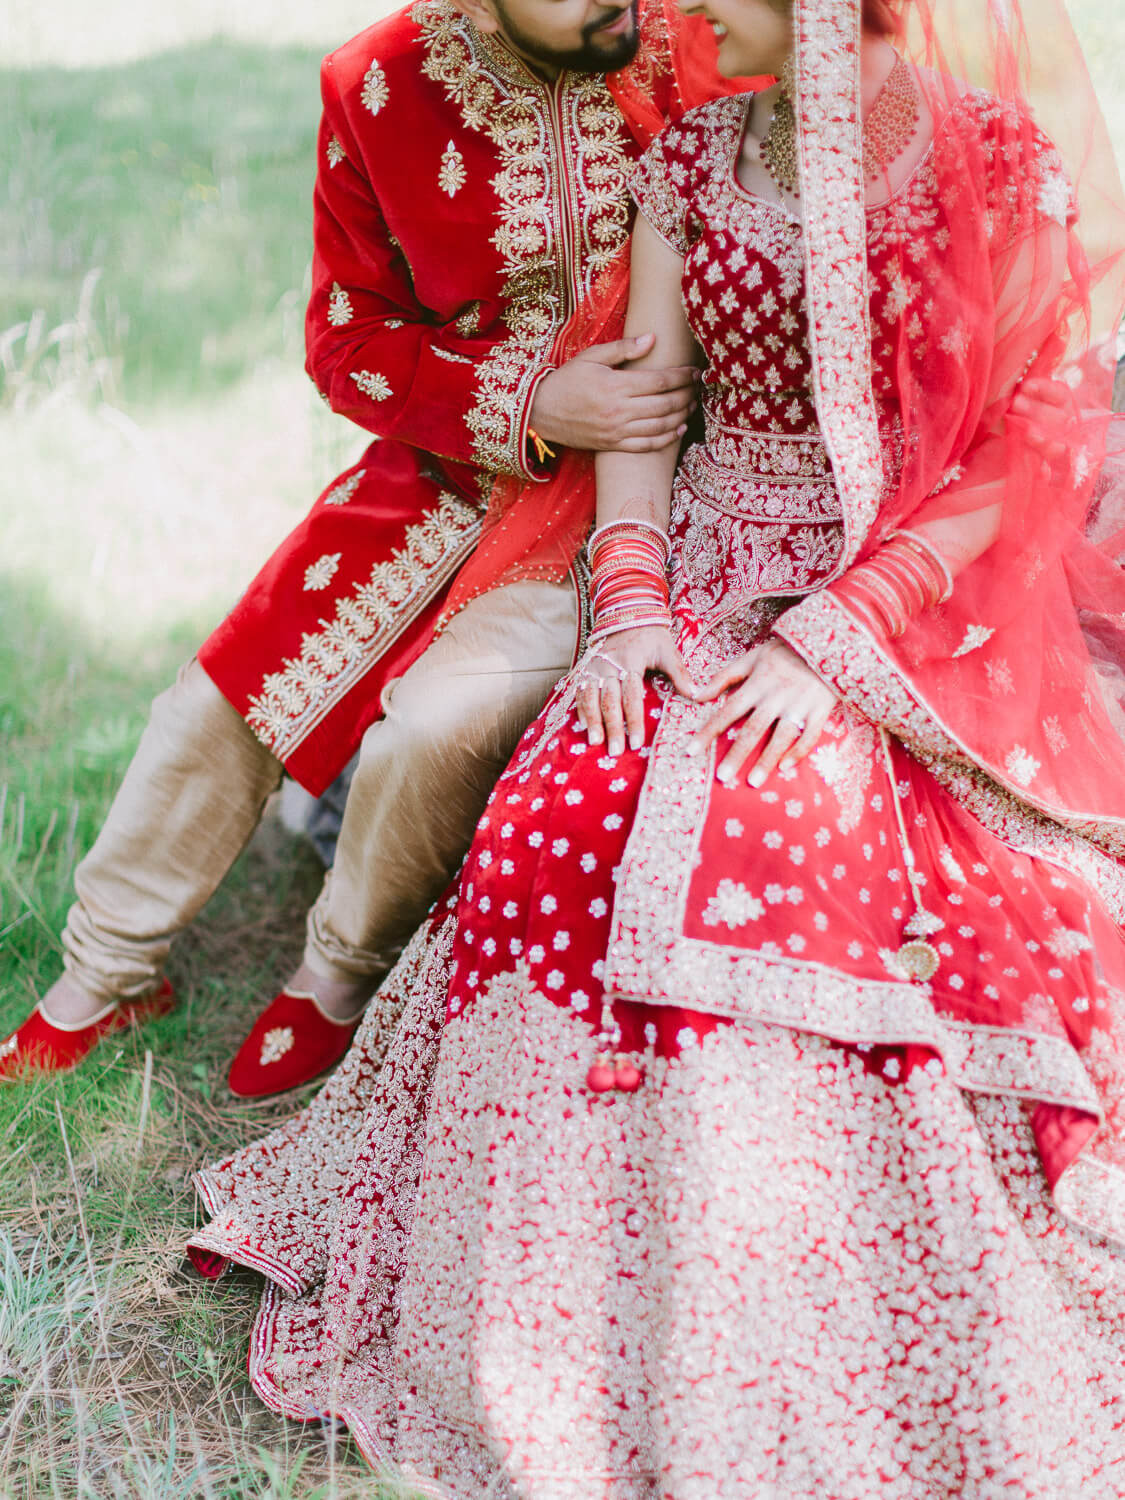 Hindu wedding couple details of gorgeous Hindu gowns by Portugal Wedding Photographer